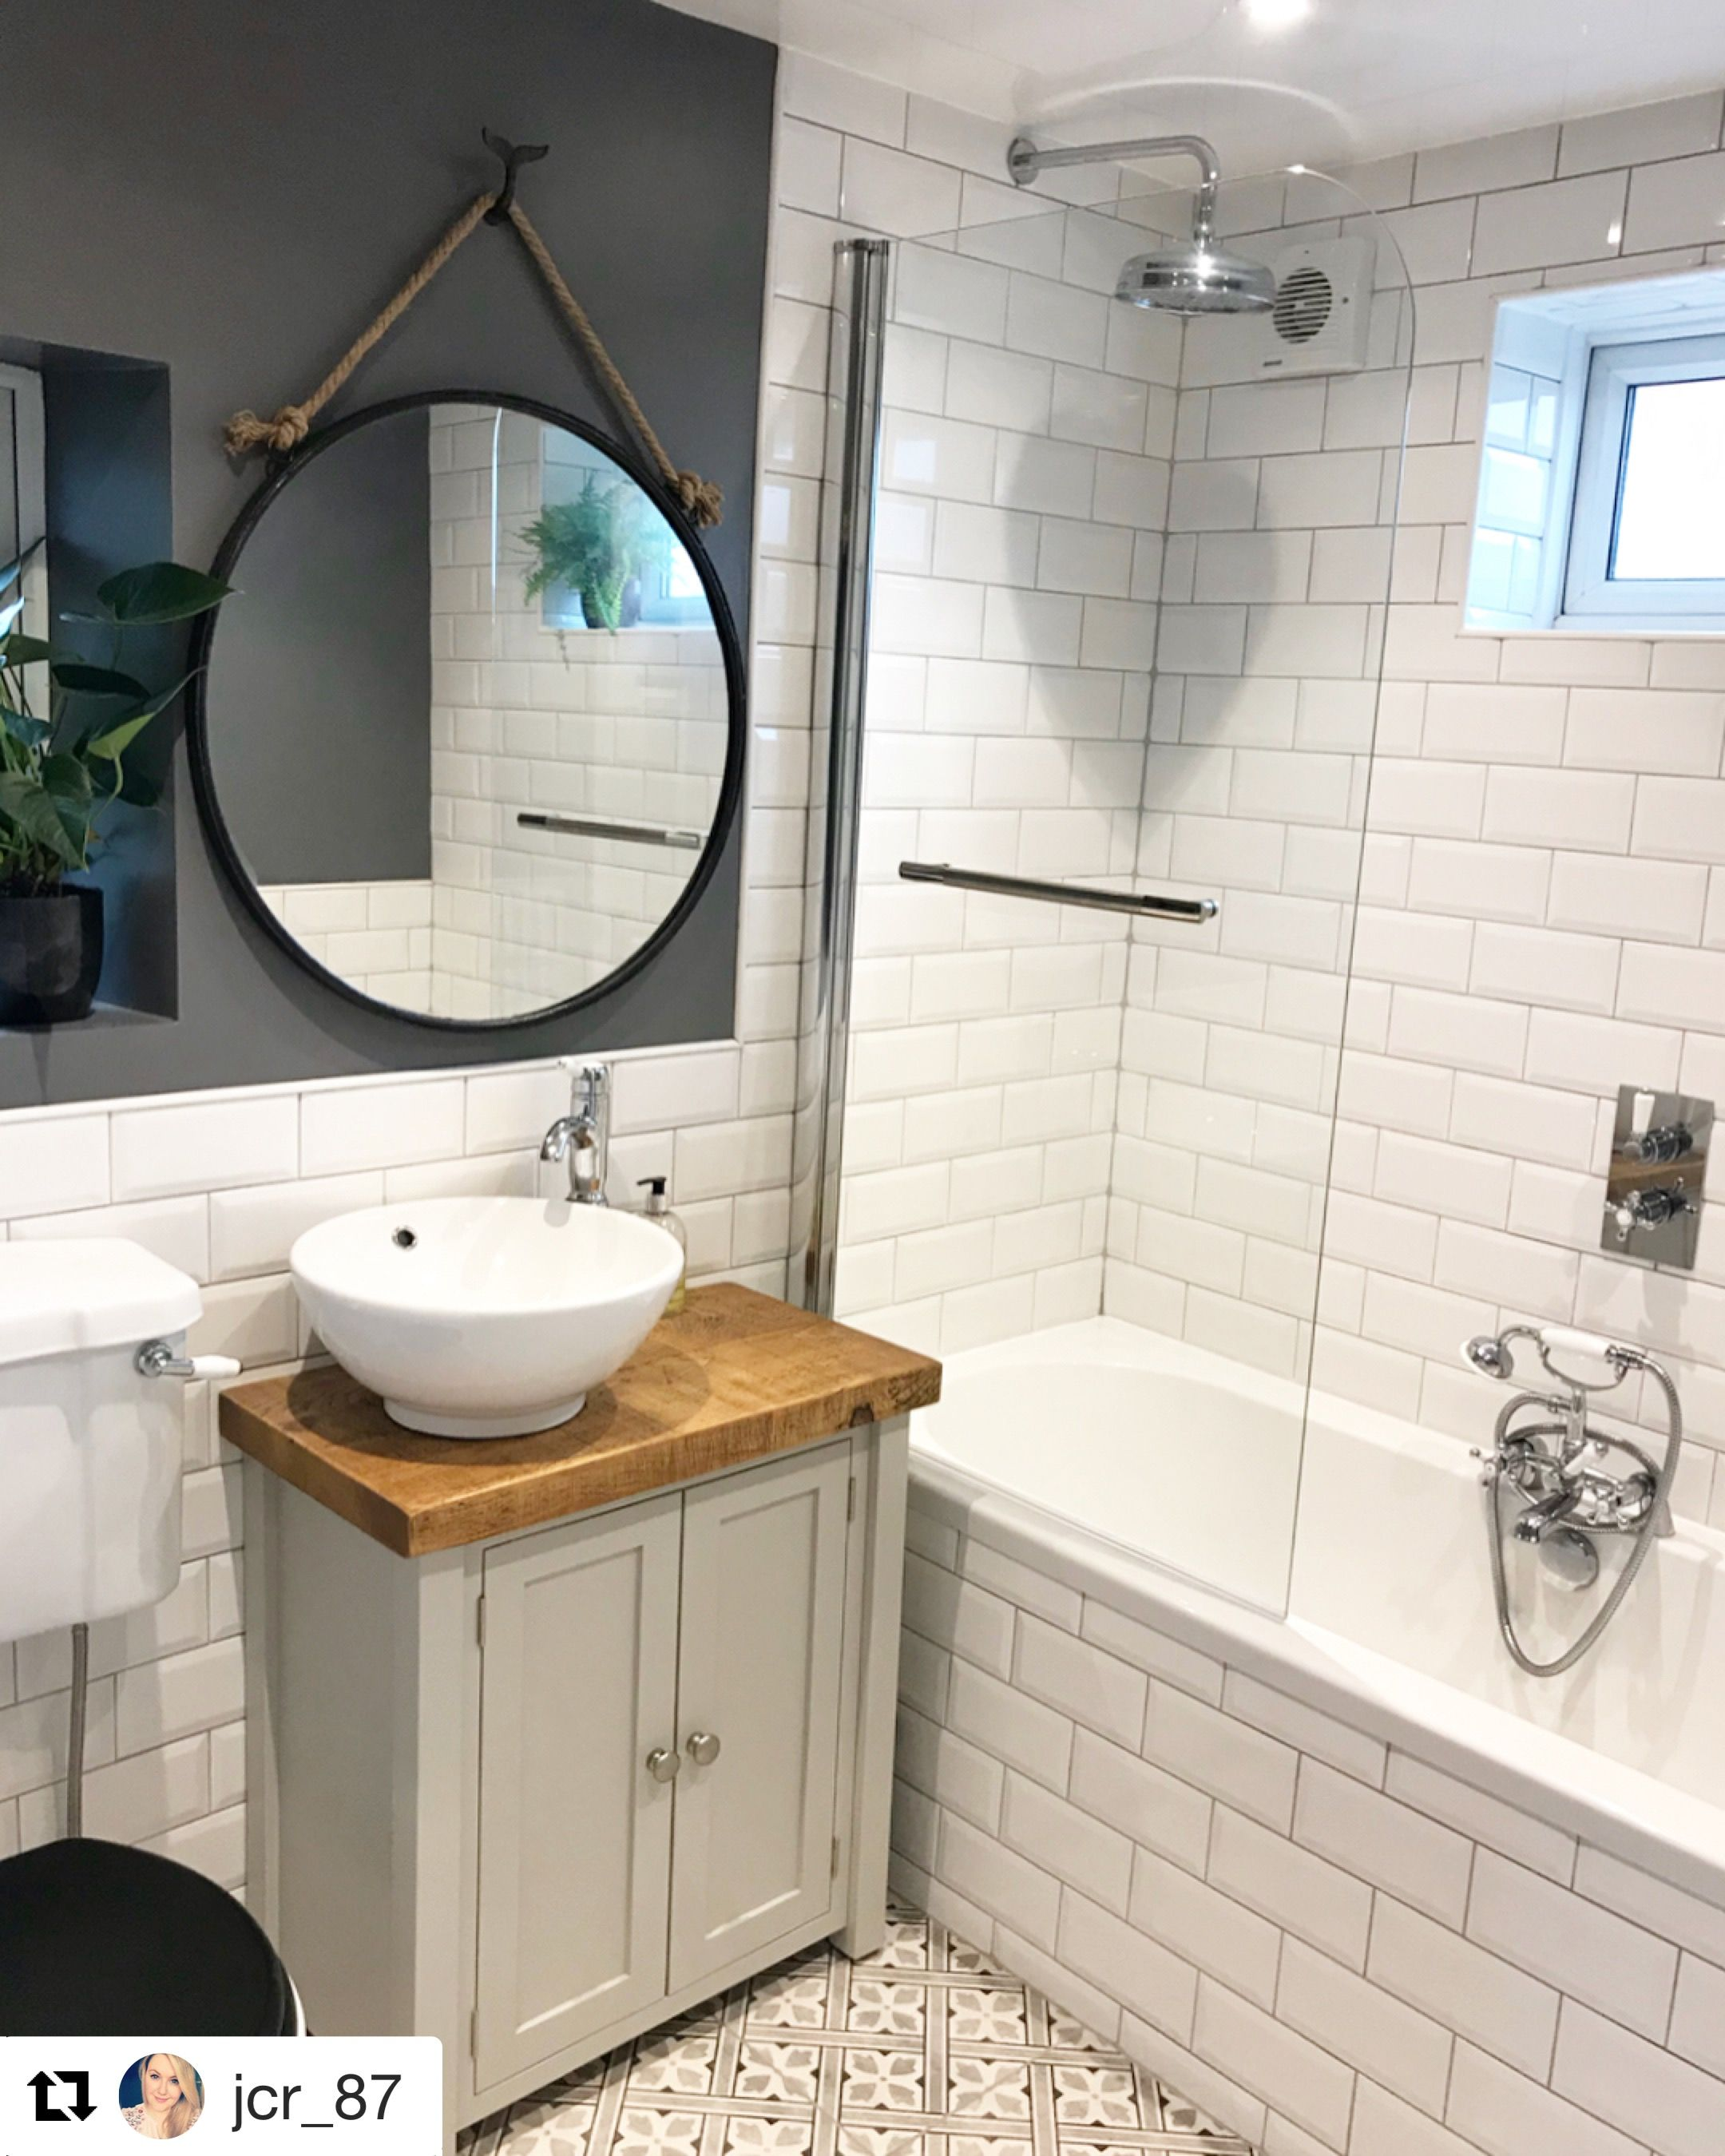 This Gorgeous Bathroom Was Shared With Us By Victoriaplum Com Customer Jcr 87 That Mirror Small Bathroom Sinks Small Bathroom Vanities Small Bathroom Decor